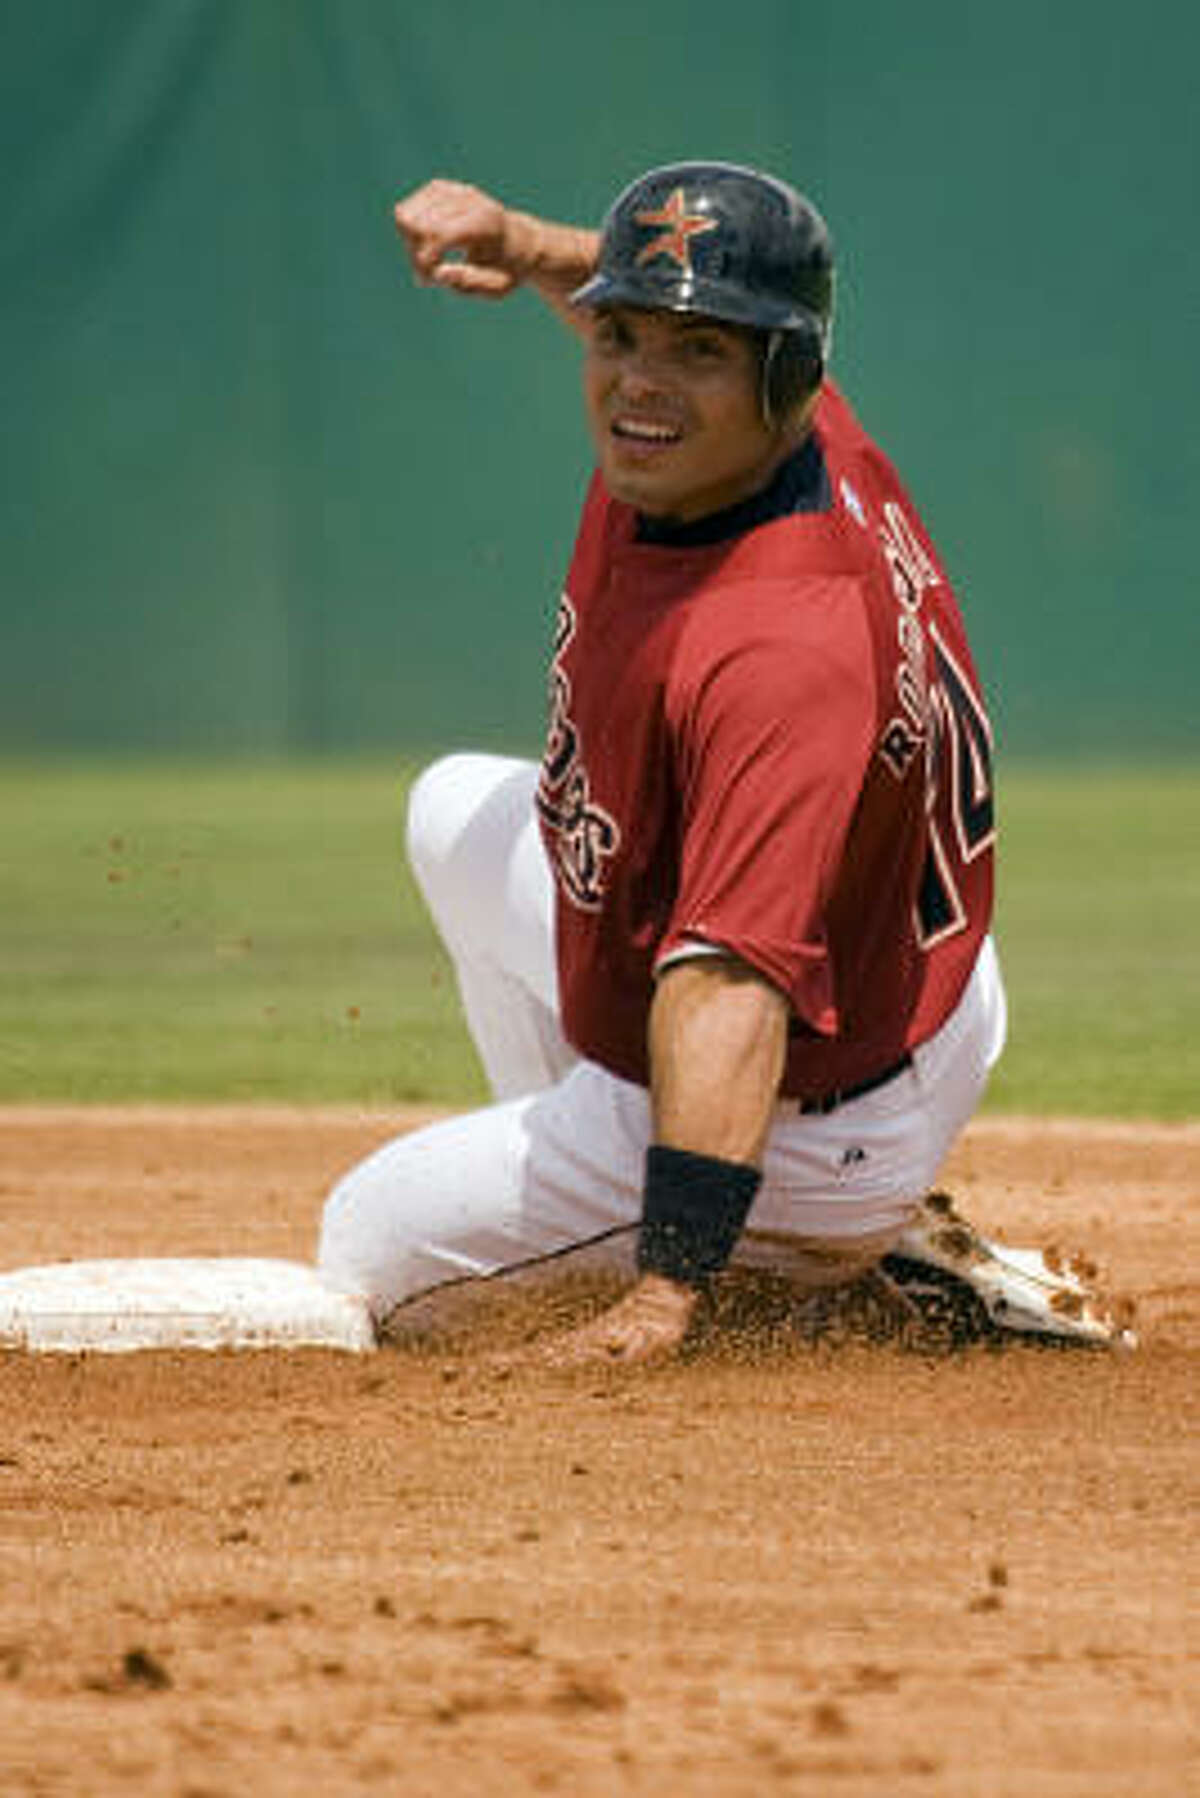 Ivan 'Pudge' Rogdriguez slides into second base after being forced out on a grounder during the first inning.